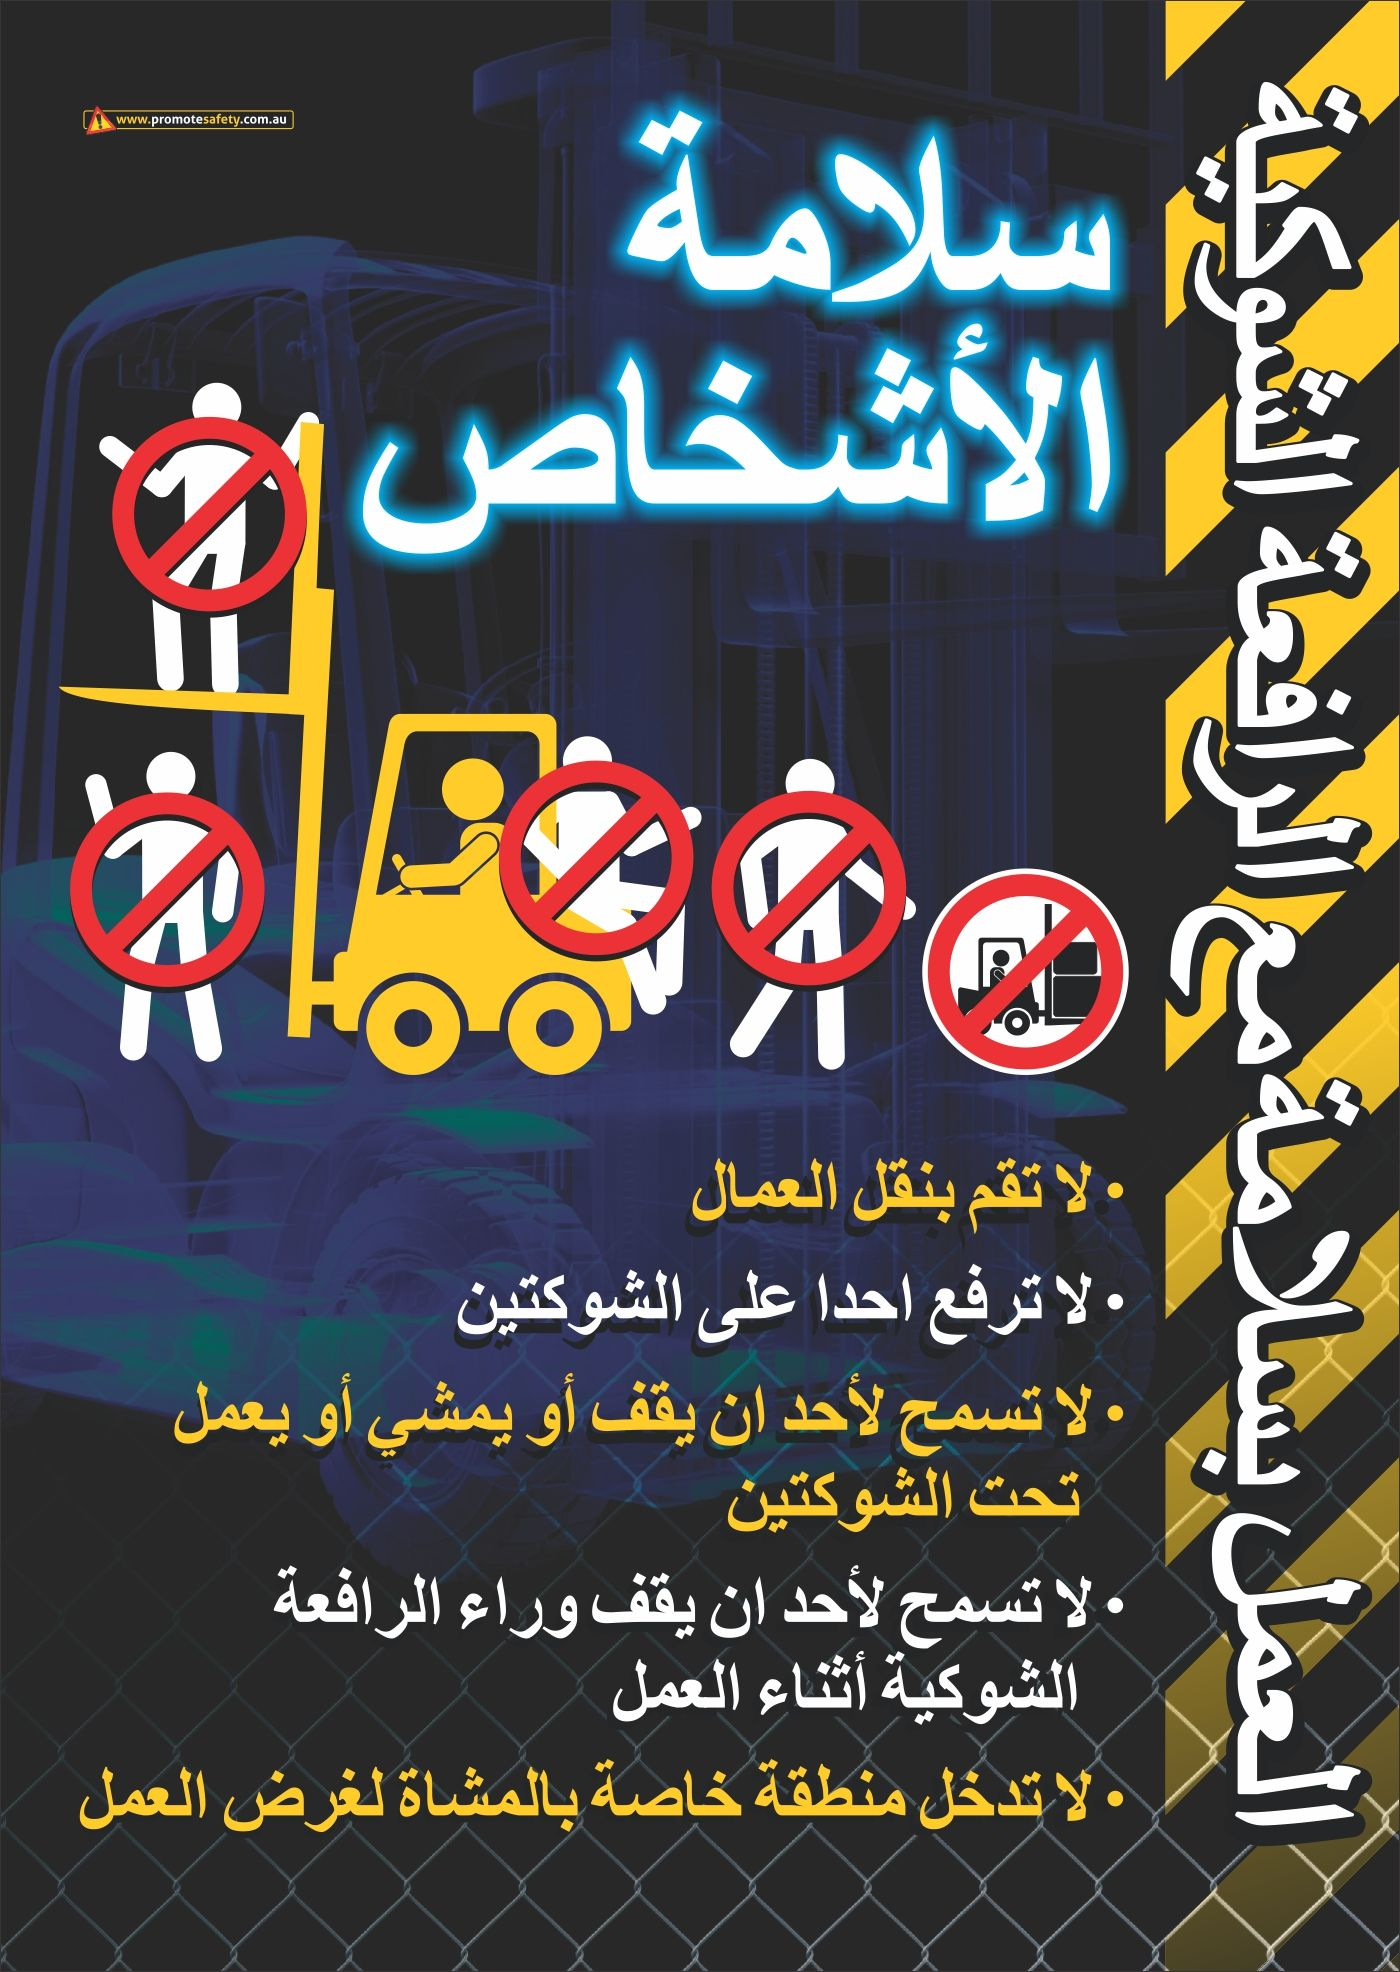 Out first poster translated into Arabic. Now available as